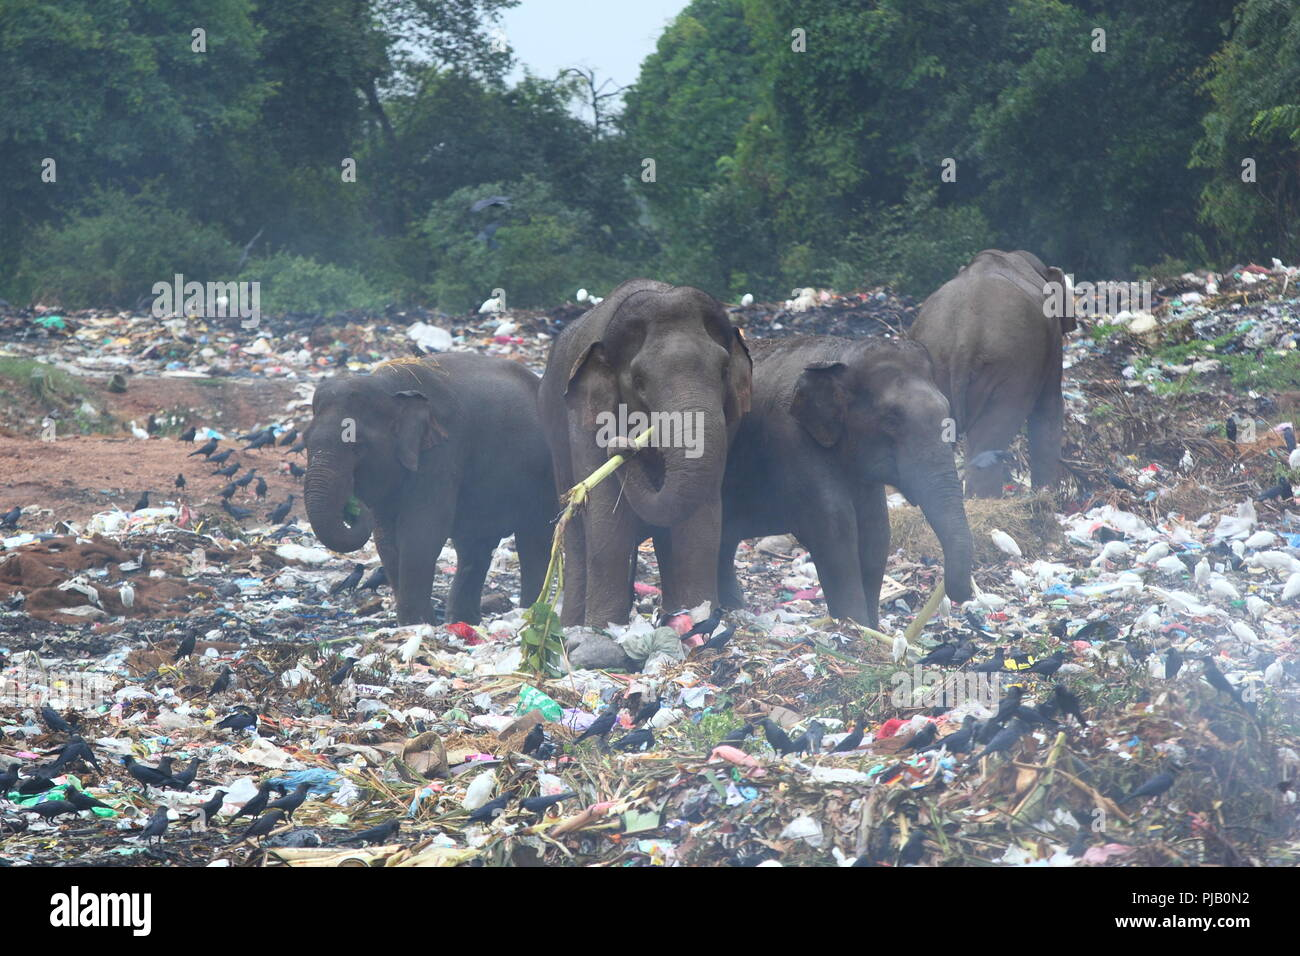 Group of wild elephants looking for in the middle of dumping ground (Sri Lanka, Trincomalee) - Stock Image